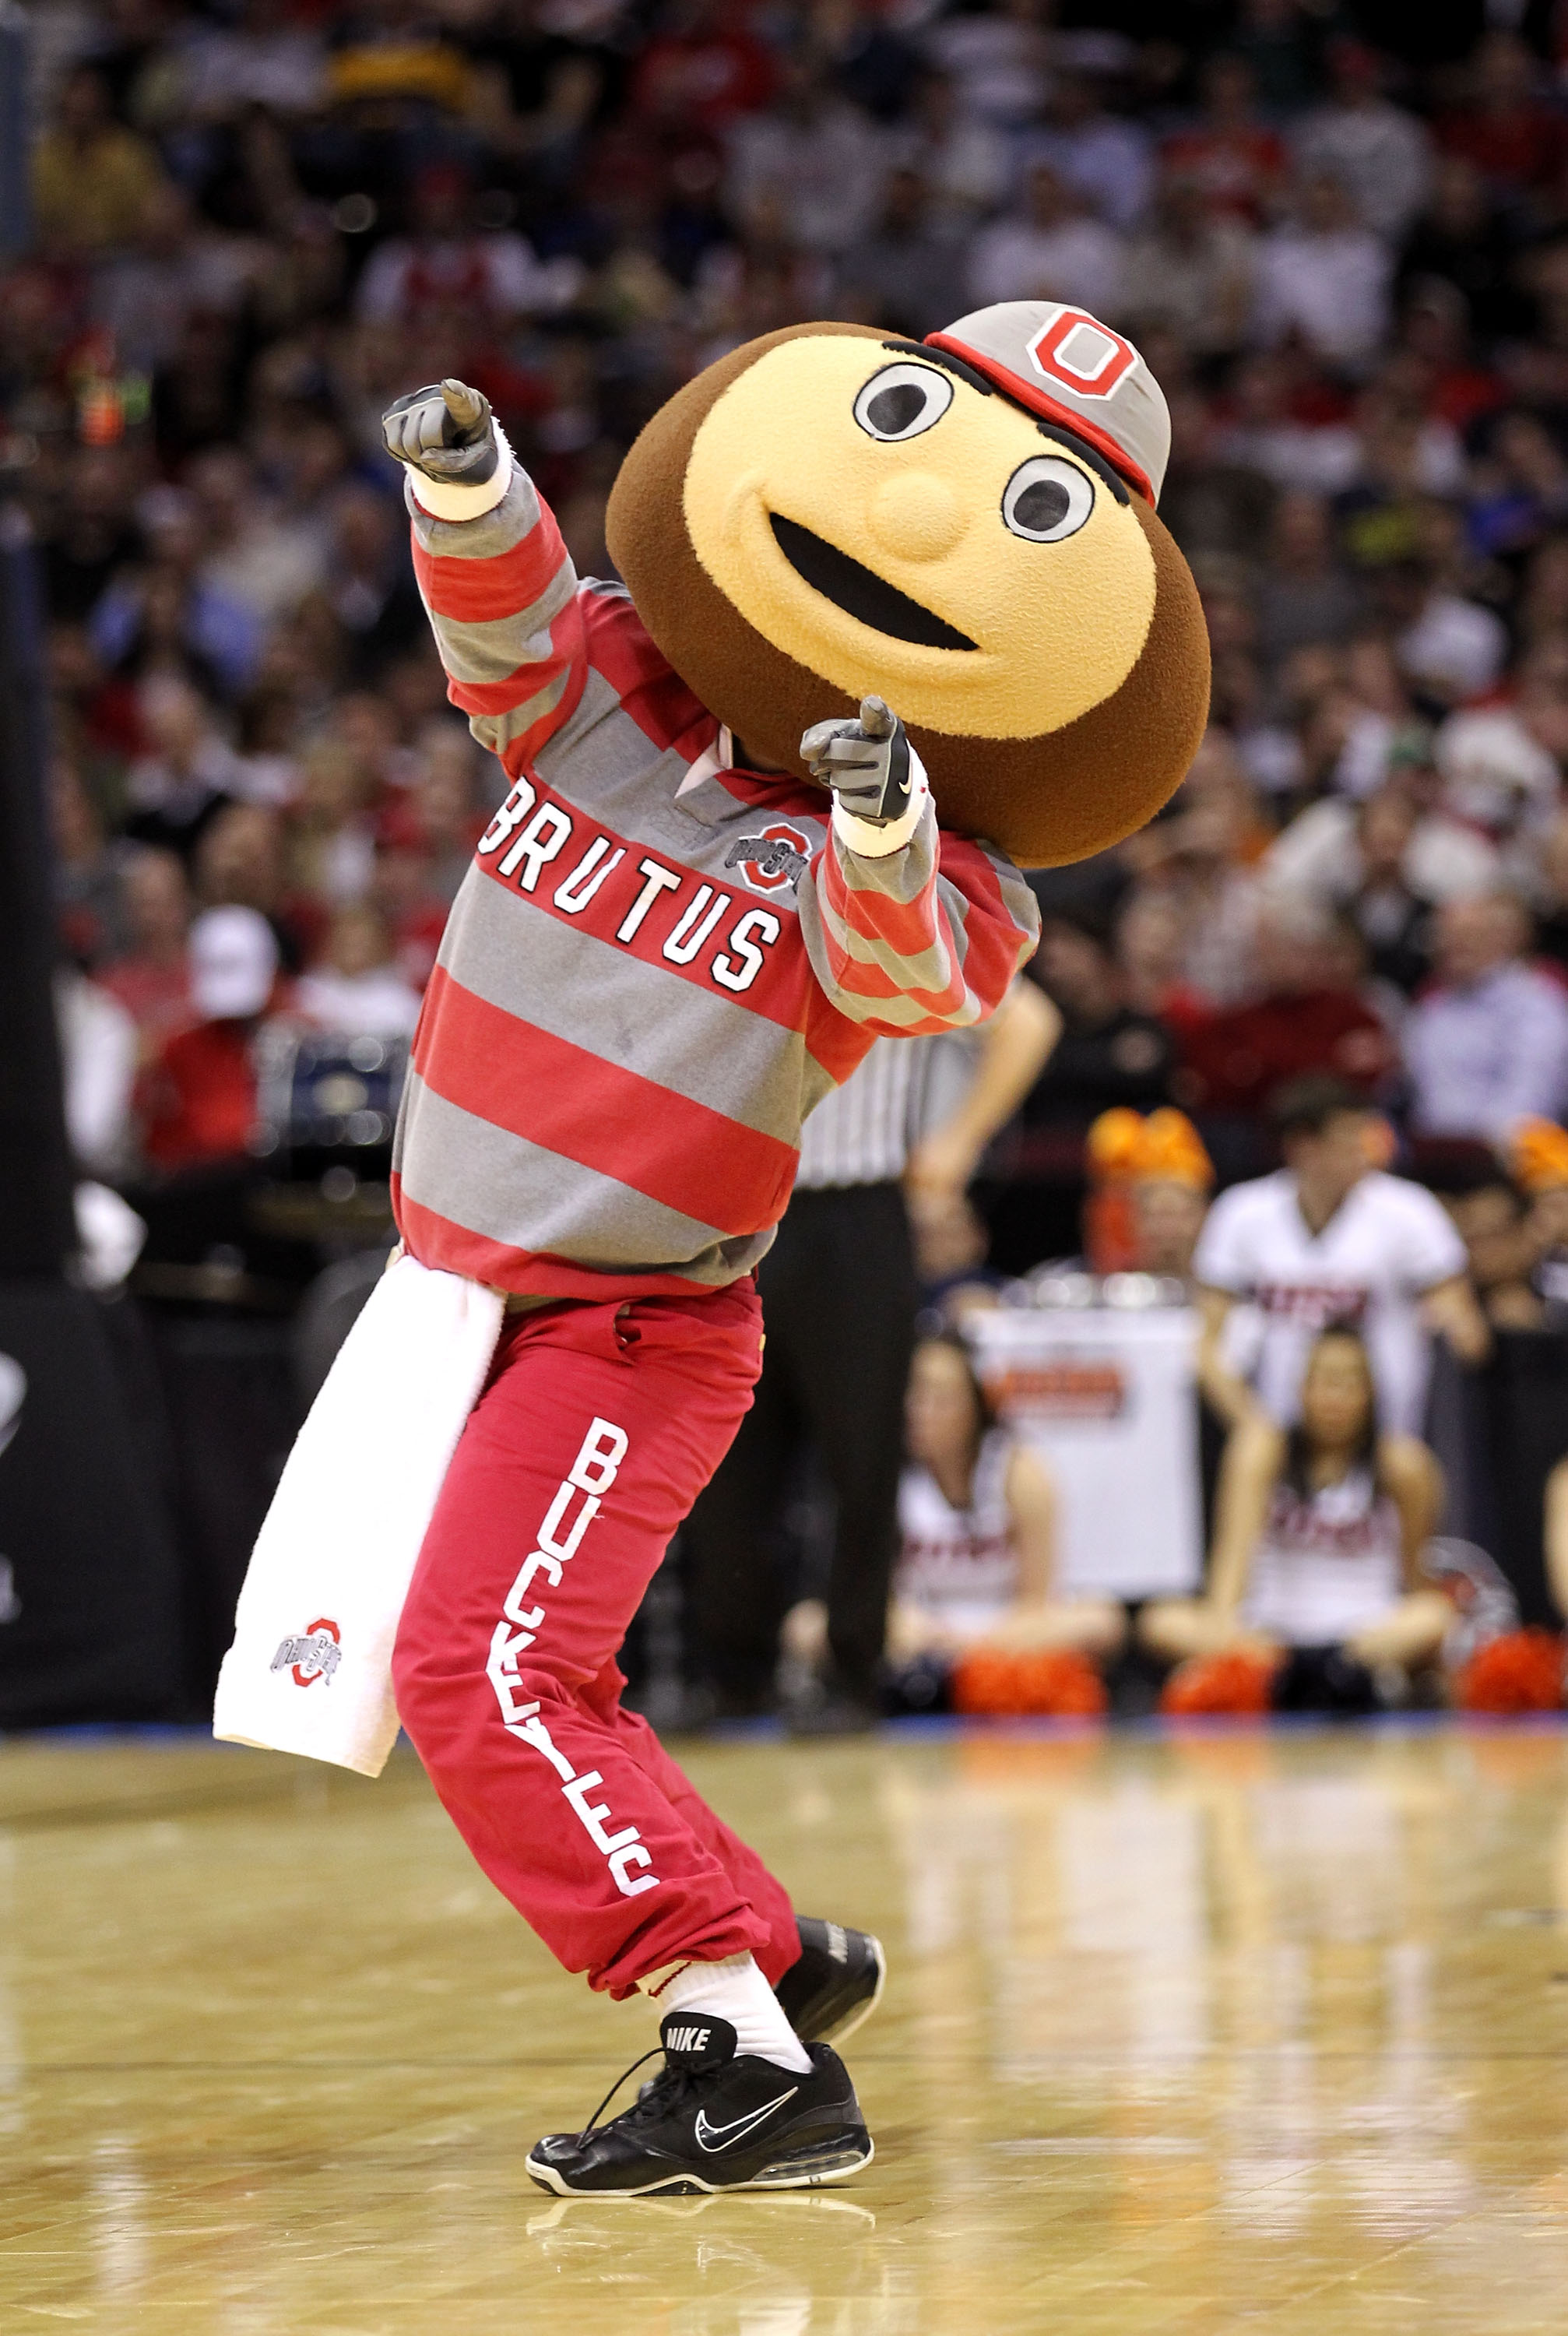 CLEVELAND, OH - MARCH 18: Brutus the Ohio State Buckeyes mascot performs on the court during the game against the Texas-San Antonio Roadrunners during the second round of the 2011 NCAA men's basketball tournament at Quicken Loans Arena on March 18, 2011 i